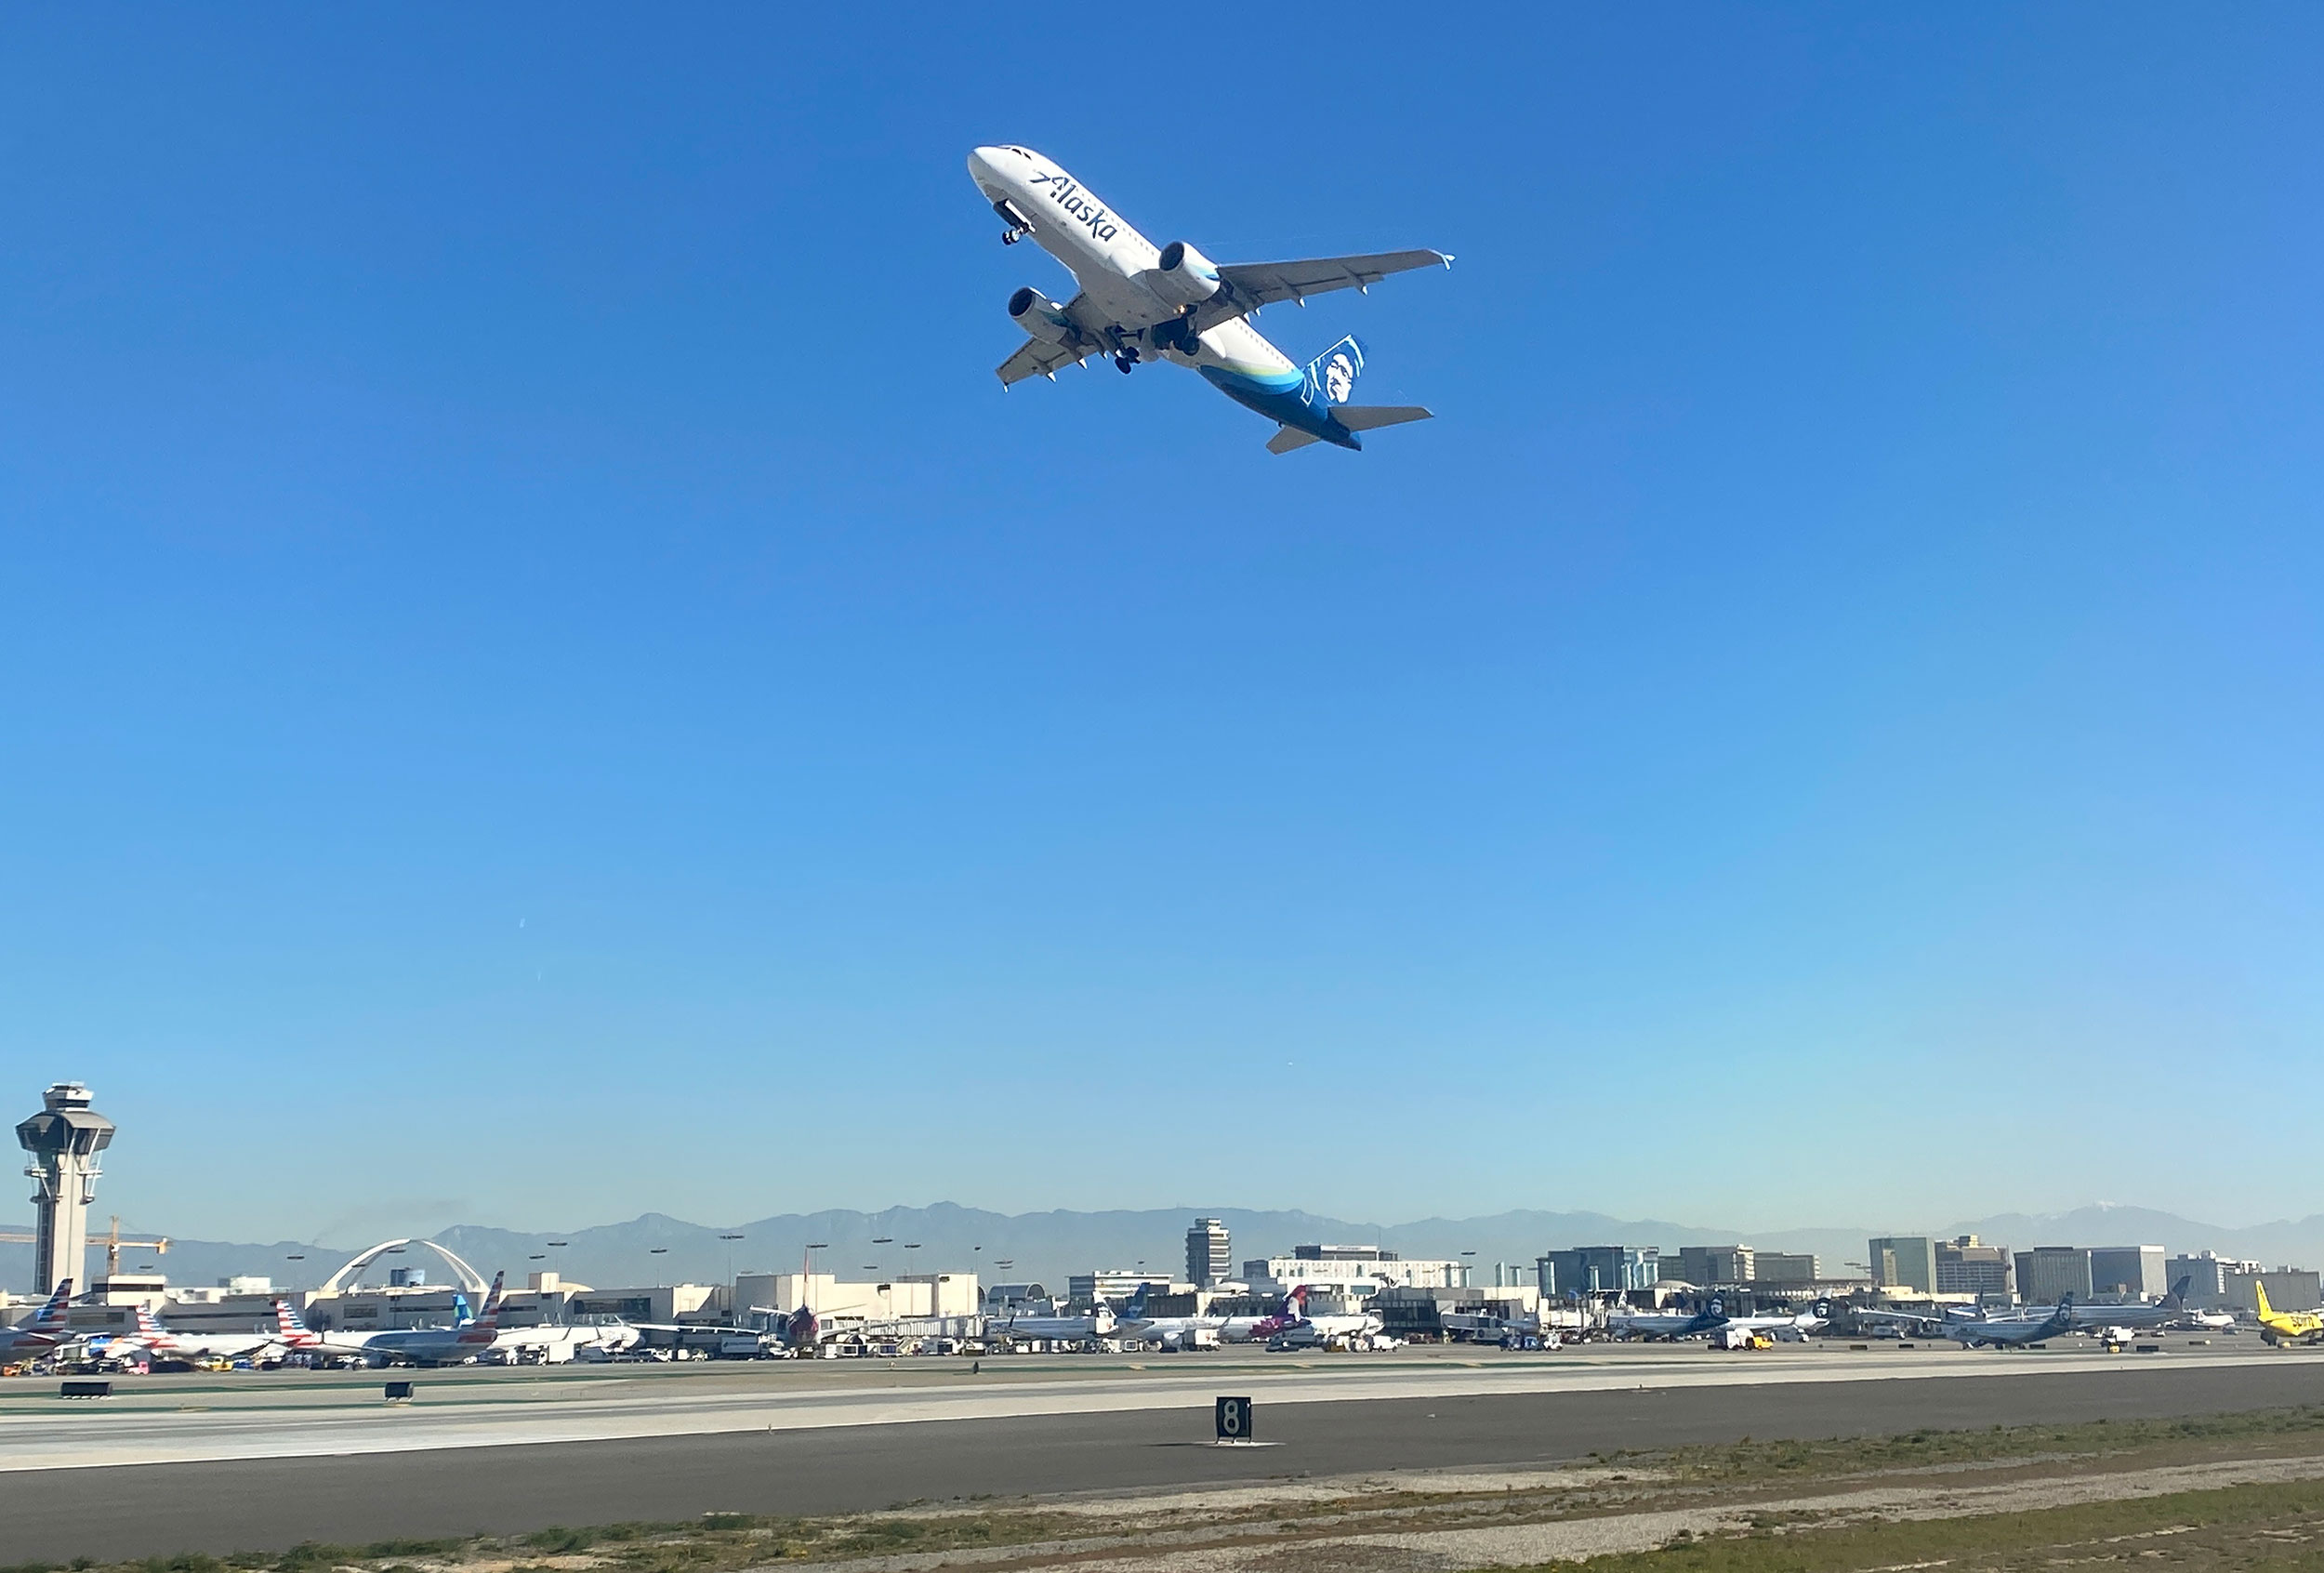 An Alaska Airlines Airbus 320 takes off from Los Angeles International Airport on February 6, 2020.